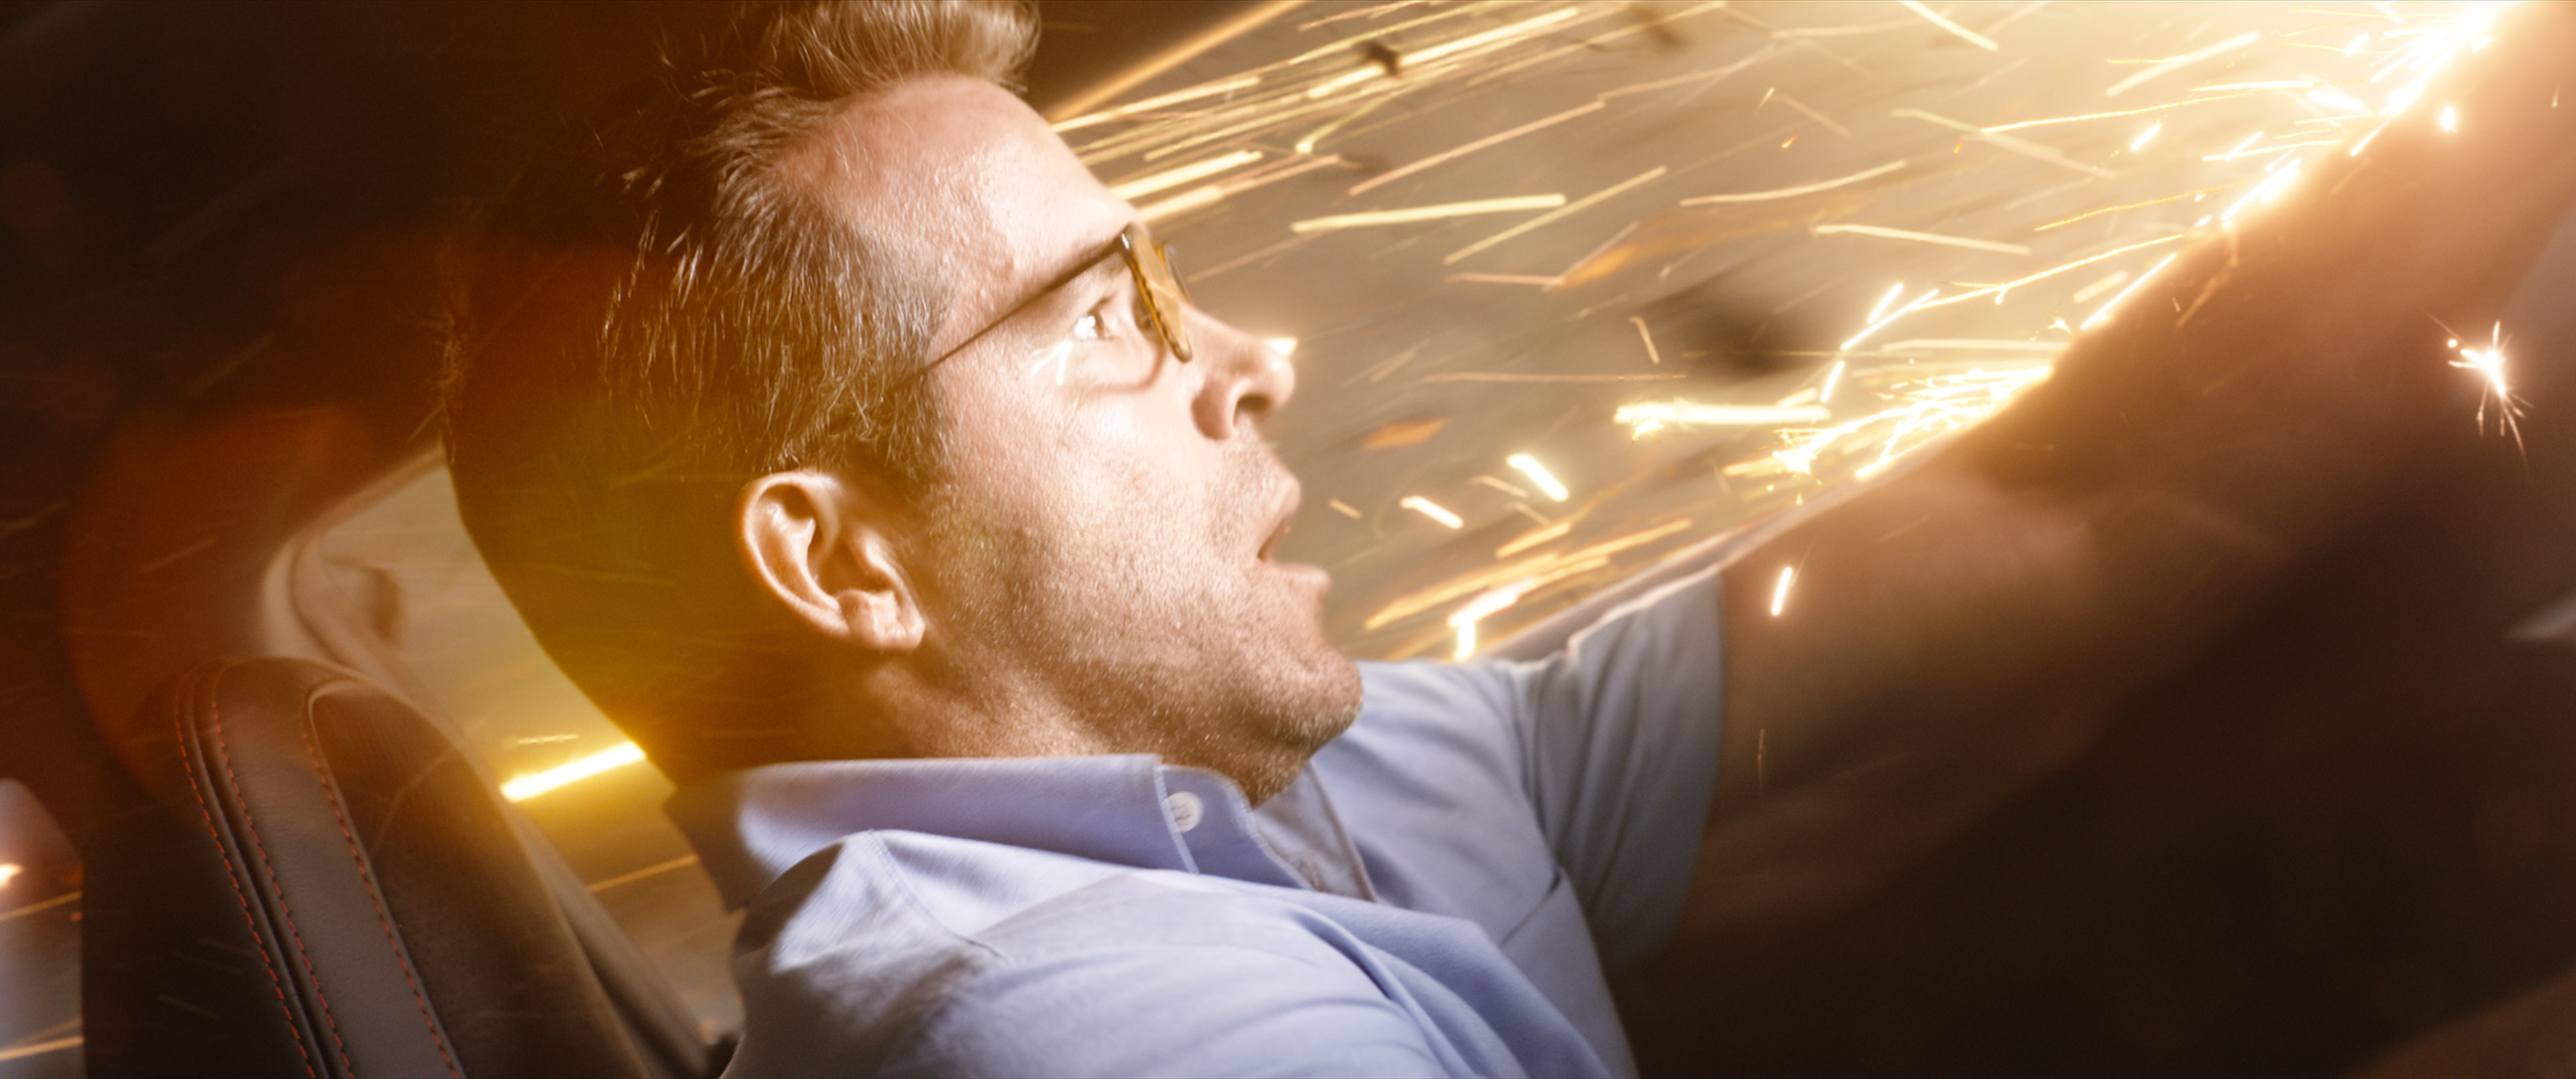 Ryan Reynolds in a blue shirt and glasses in a vehicle, while sparks fly around him.